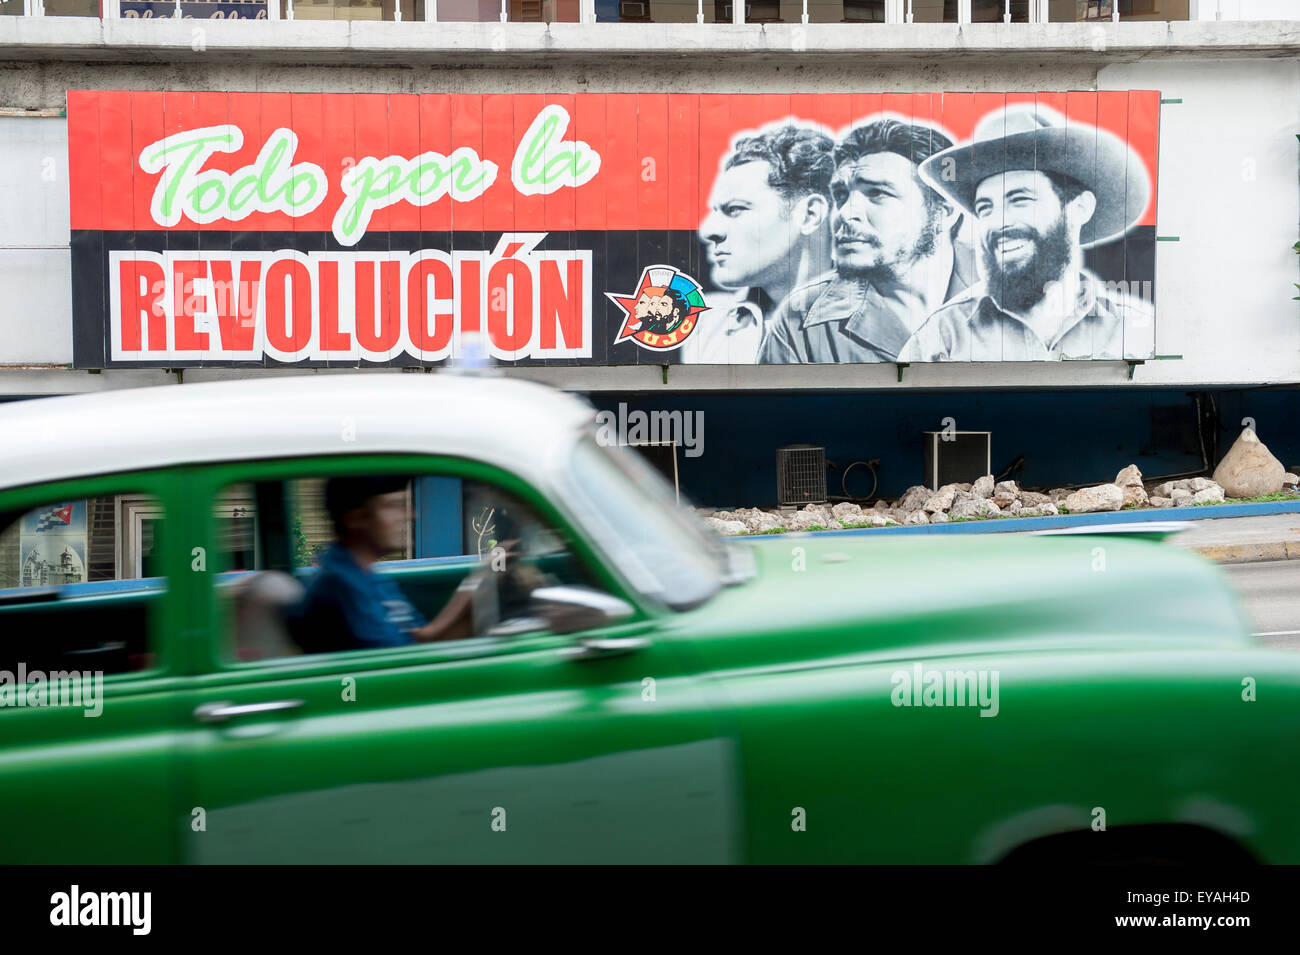 HAVANA, CUBA - JUNE 12, 2011: Vintage American car passes in front of billboard promoting Communist propaganda on - Stock Image